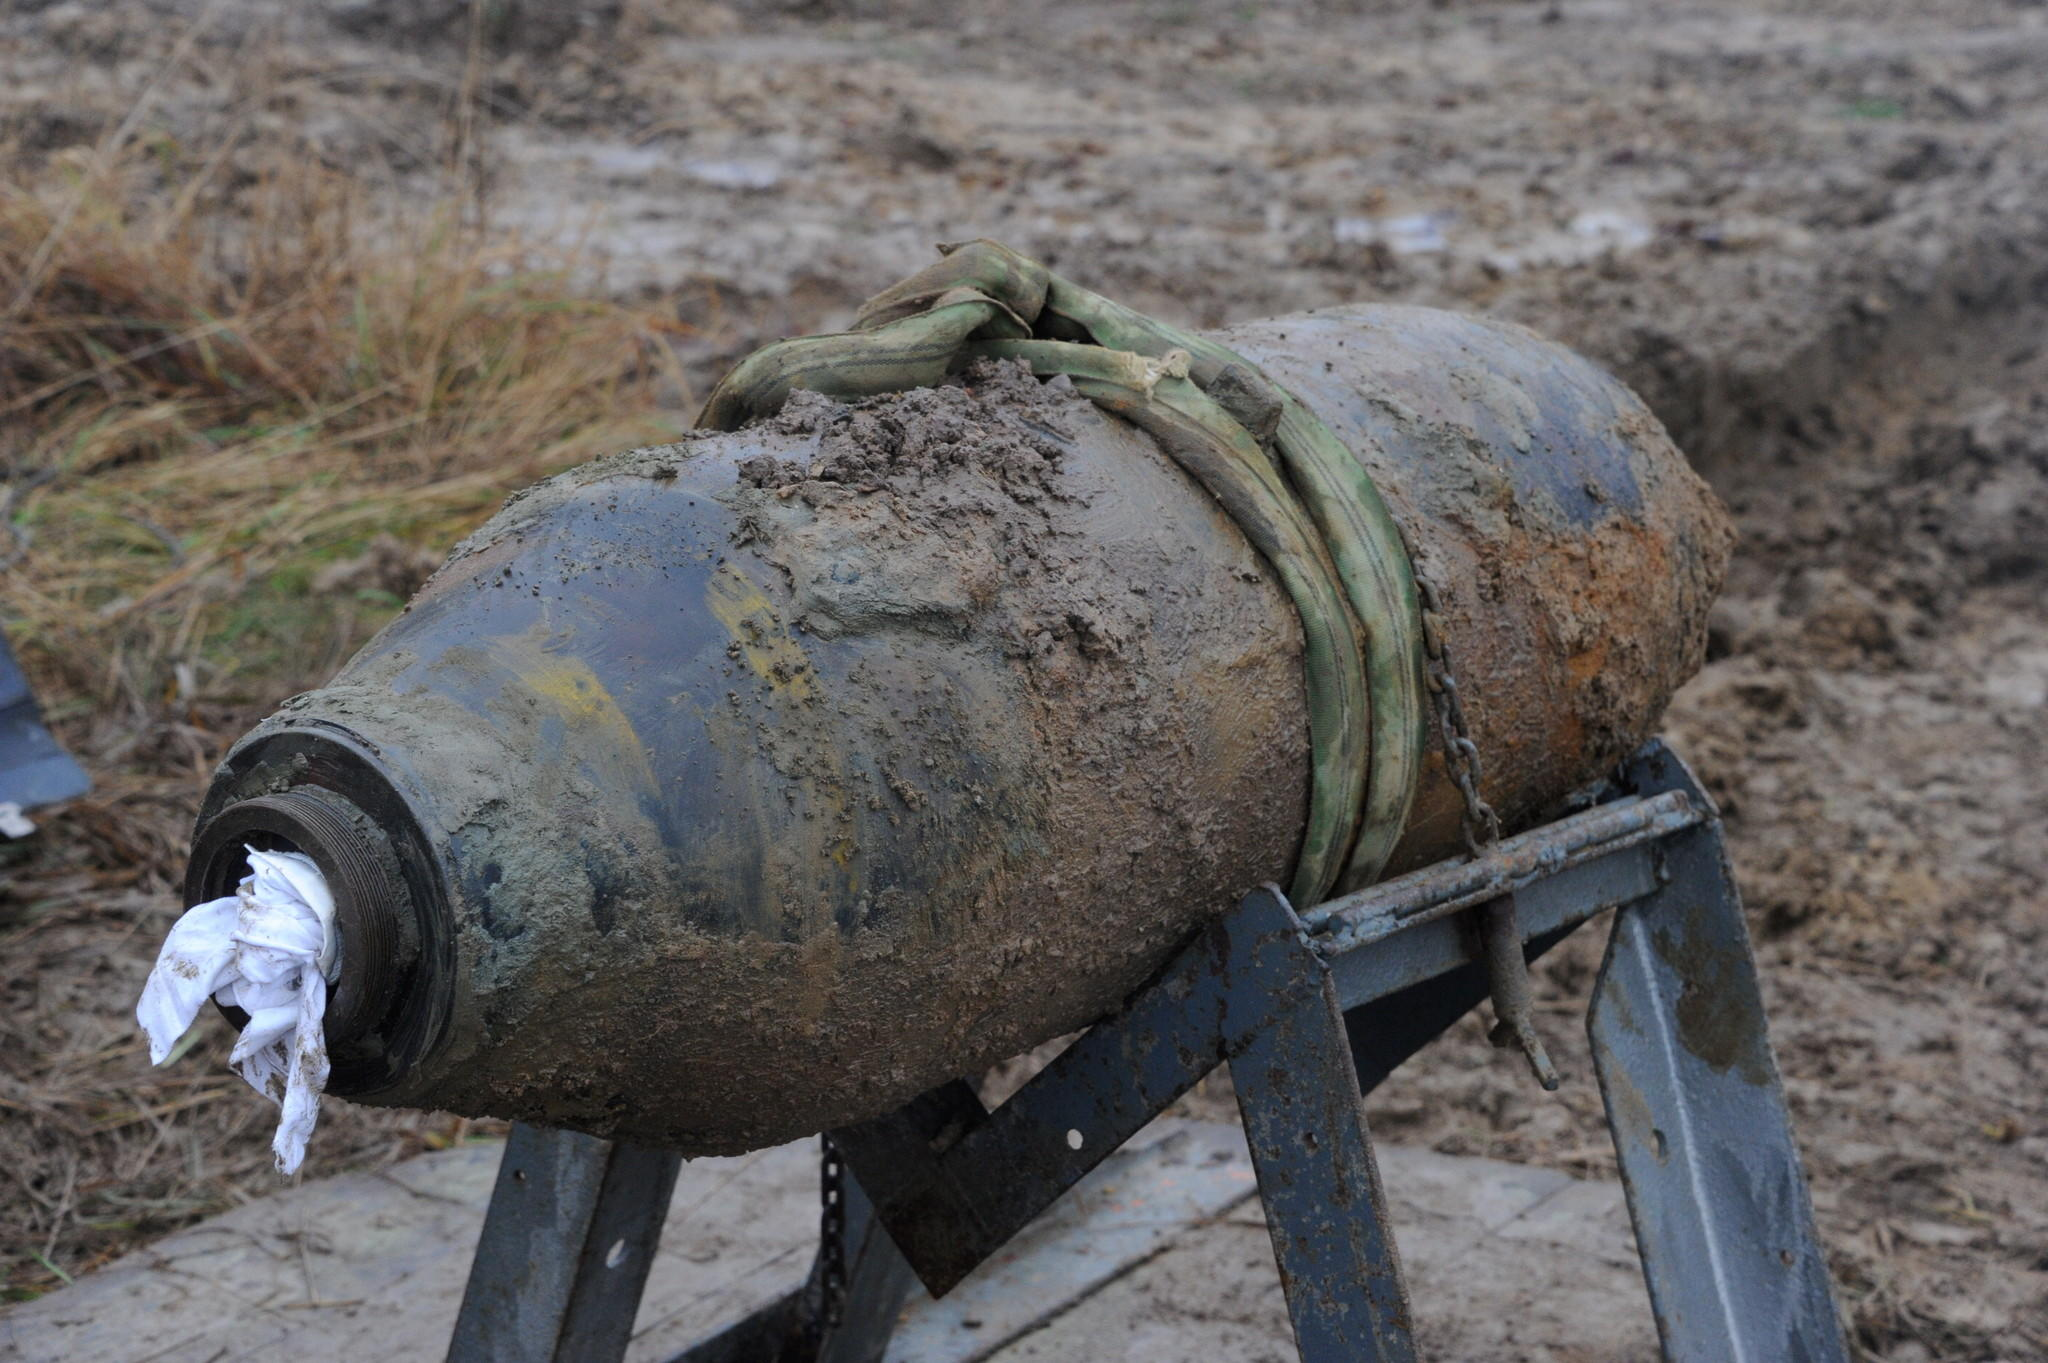 December 2013 file photo shows a defused US aerial bomb awaiting transportation in Kiel-Meimersdorf, Germany.